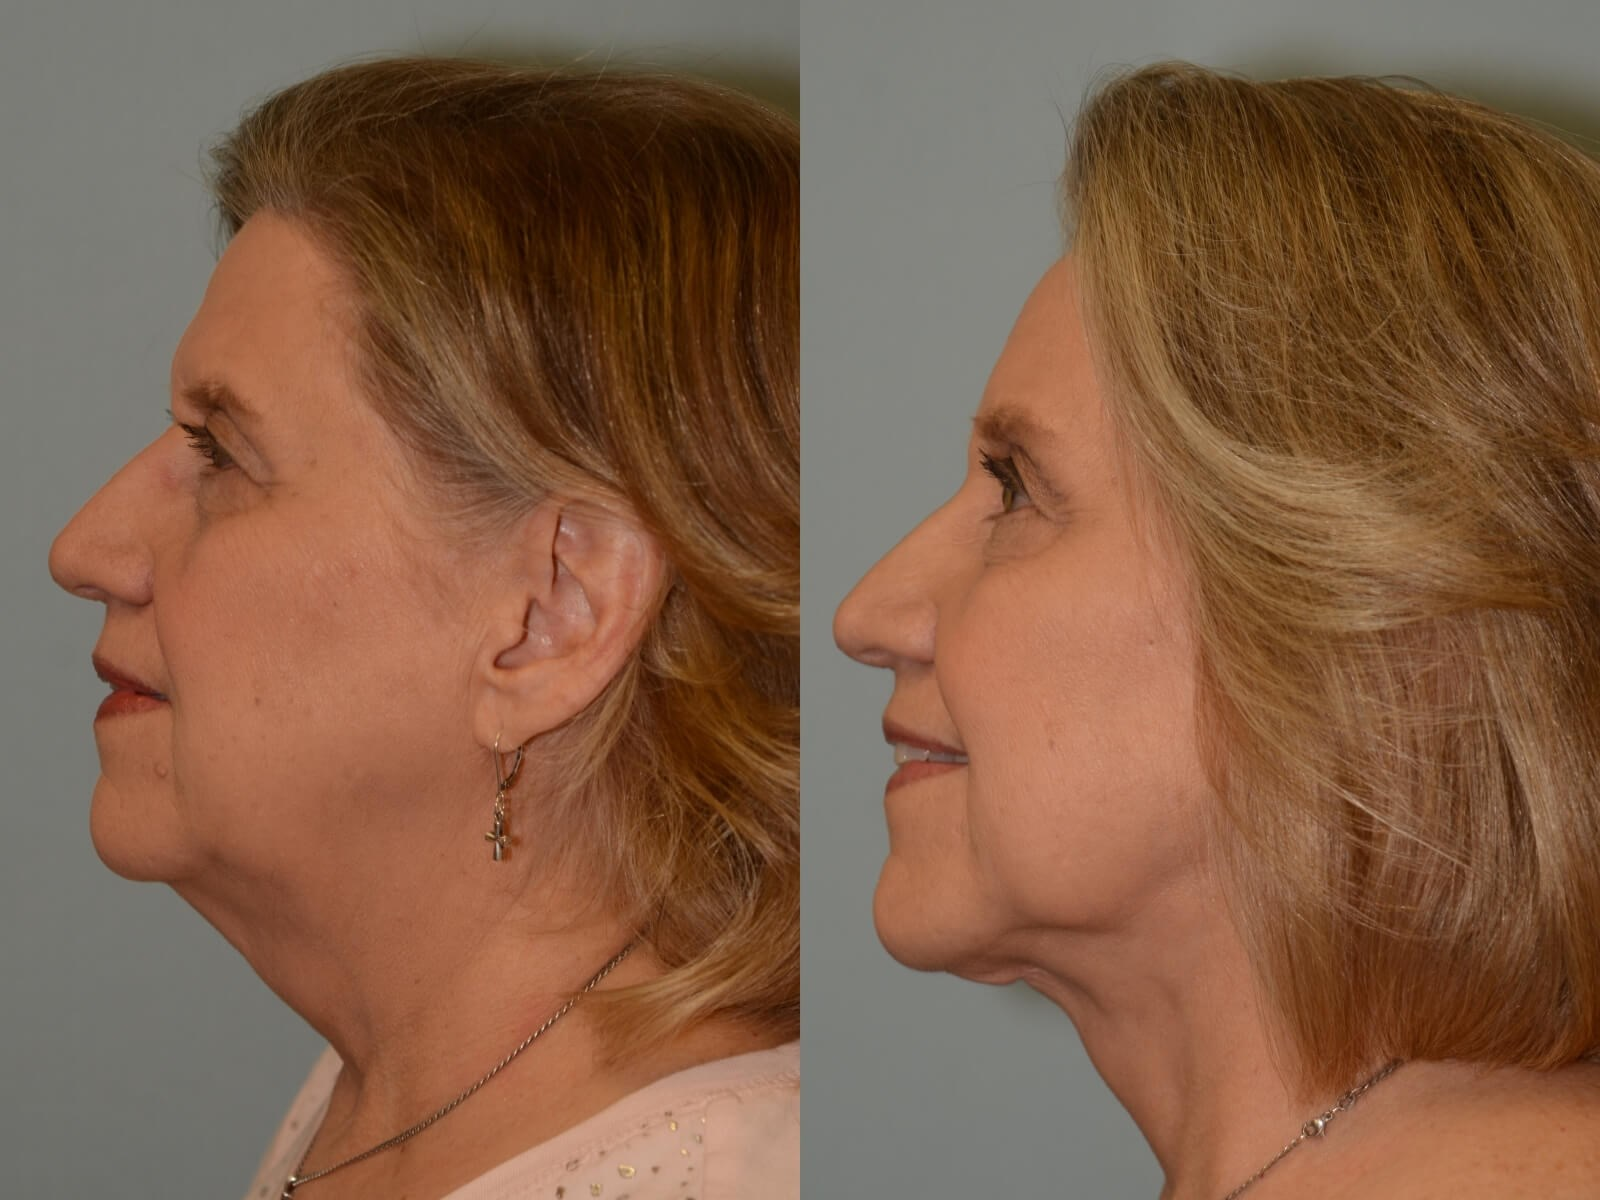 Facelift Profile View After